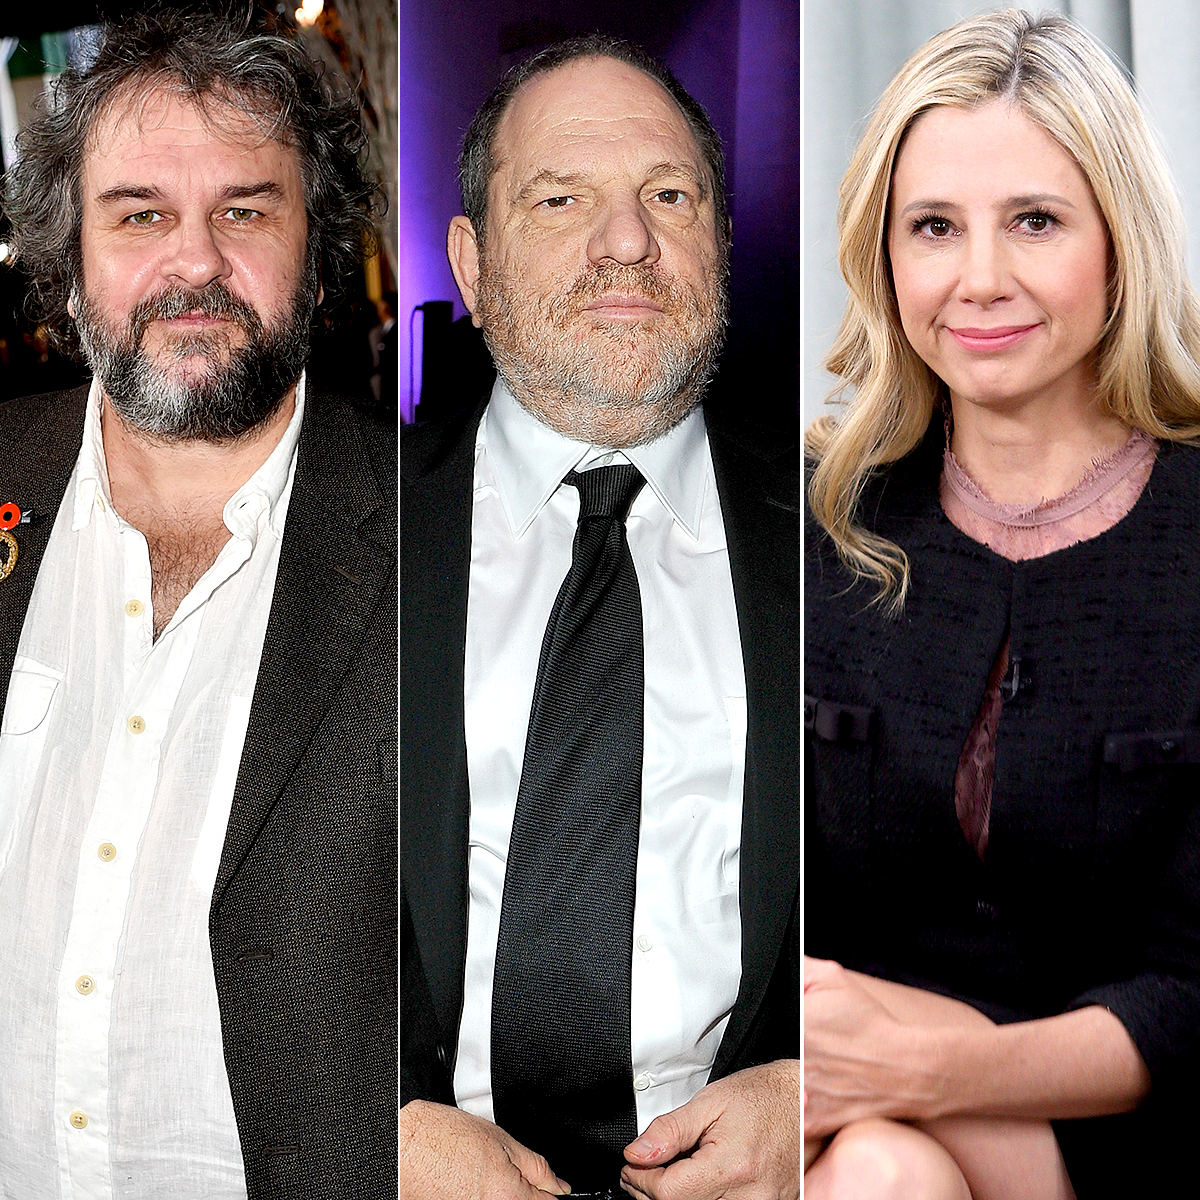 Peter Jackson confirms Weinstein blacklisted accusers from LOTR roles